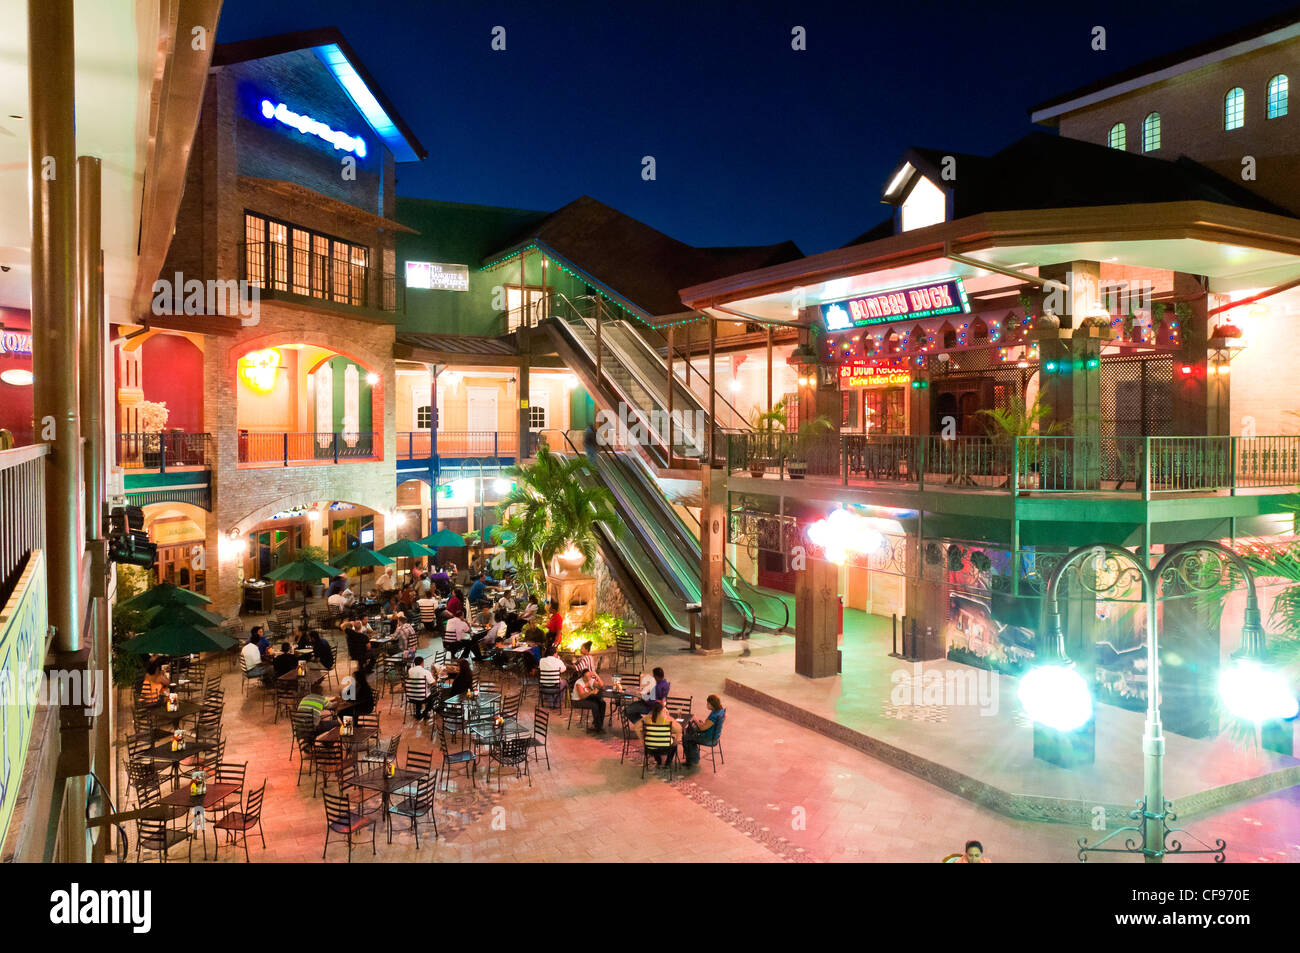 Movie towne, an entertainment complex in Trinidad at night. Open air restaurants, and nightlife. Stock Photo